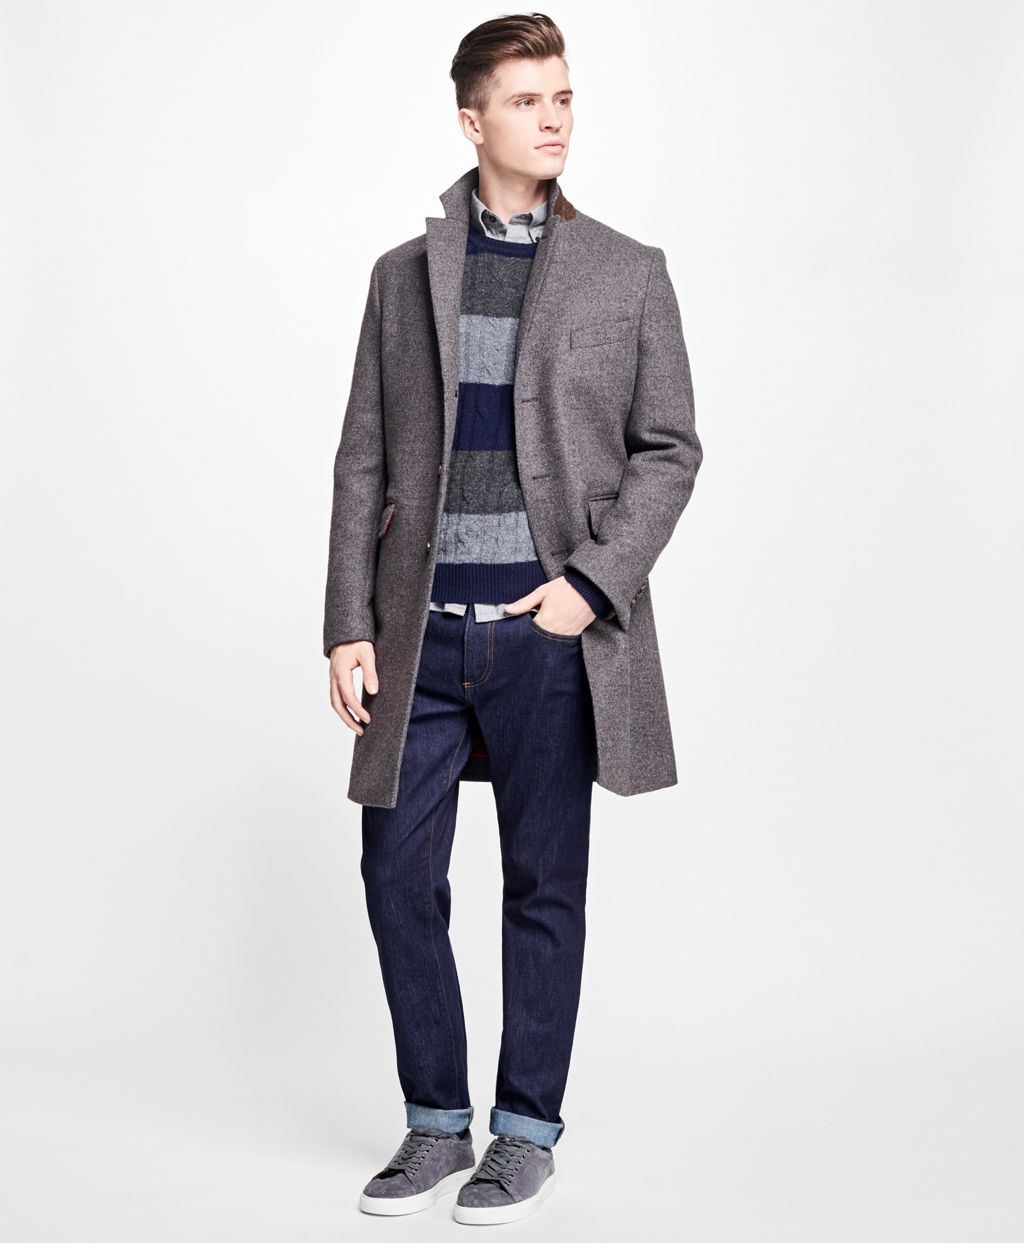 0a6550ccf Double-Faced Wool-Blend Topcoat - Brooks Brothers   Coats ...